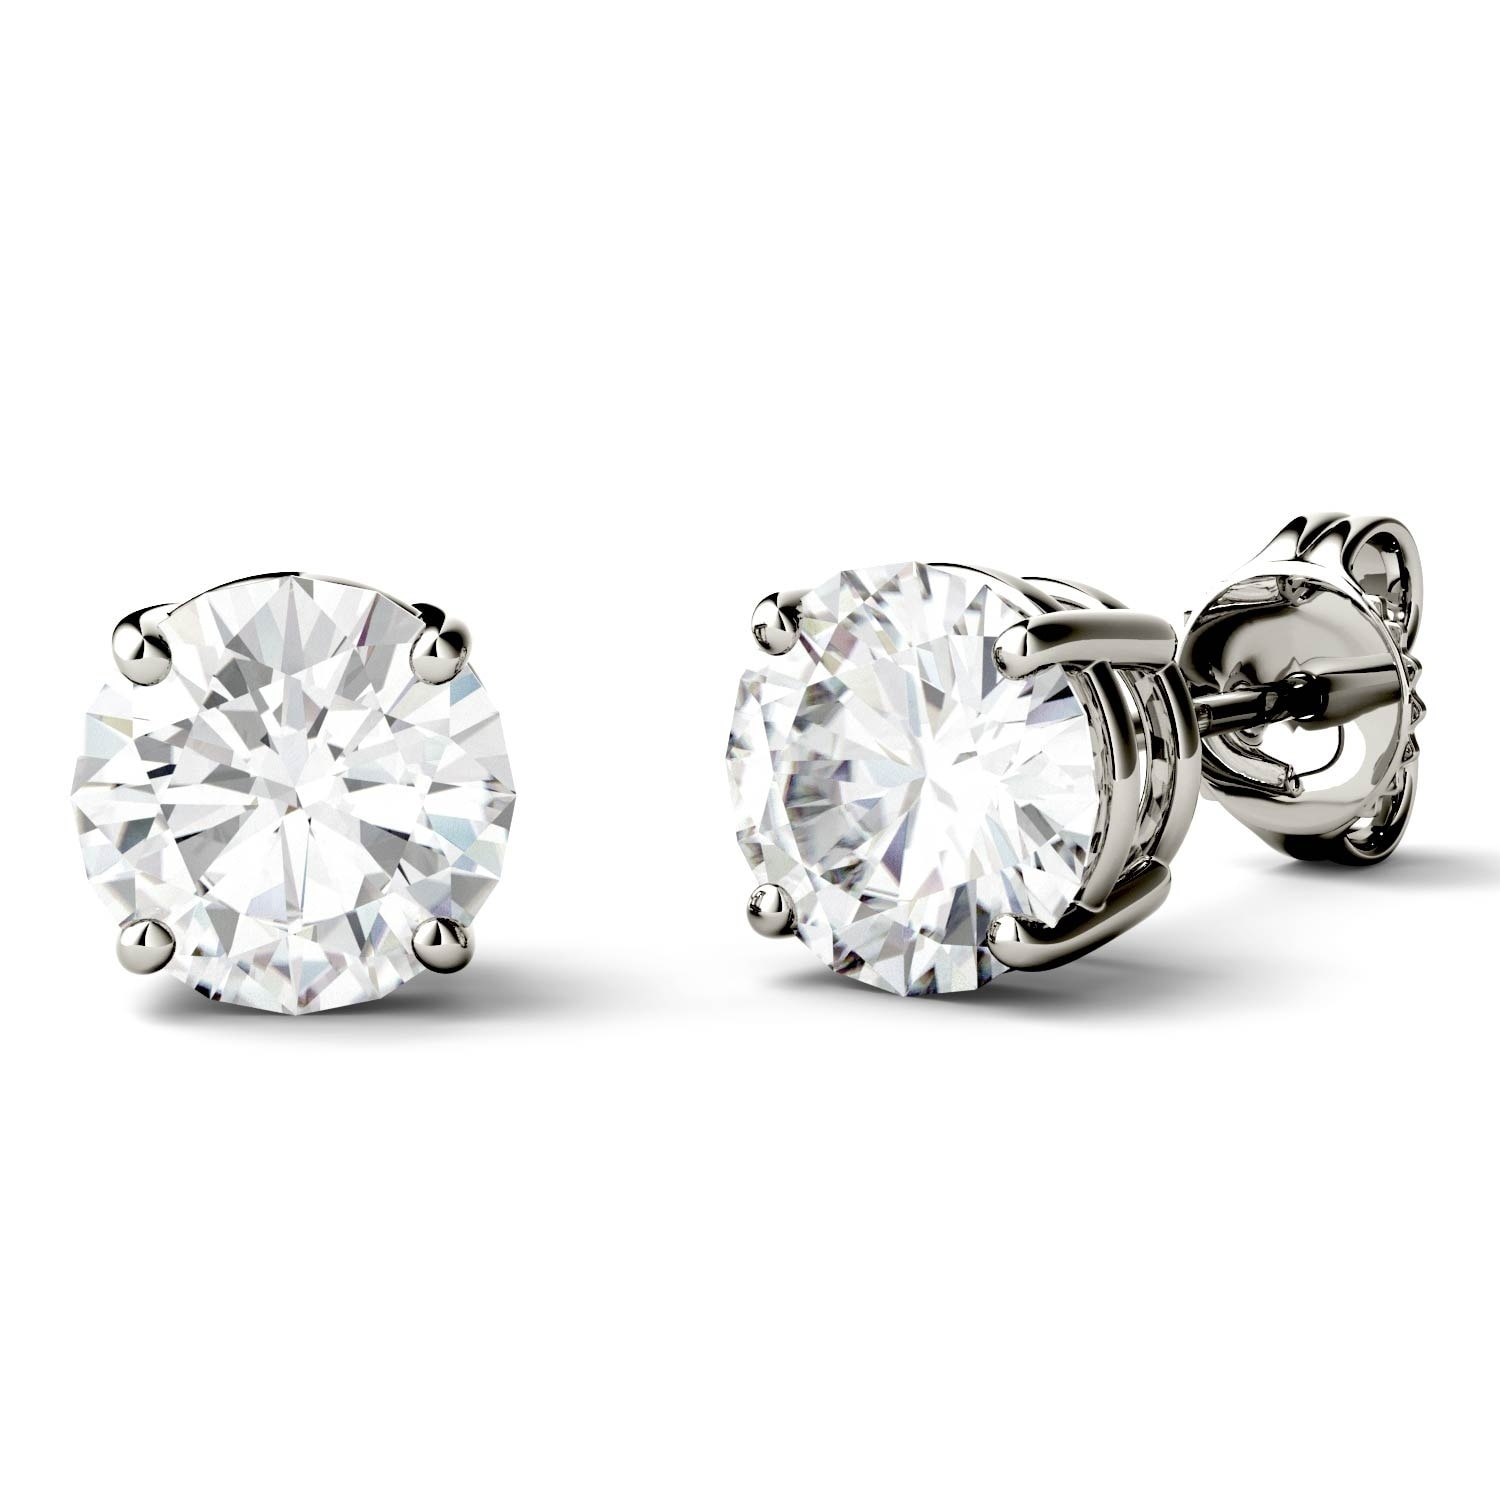 forever colvard amazon cut dp by earrings jewelry round stud classic com charles brilliant dew moissanite